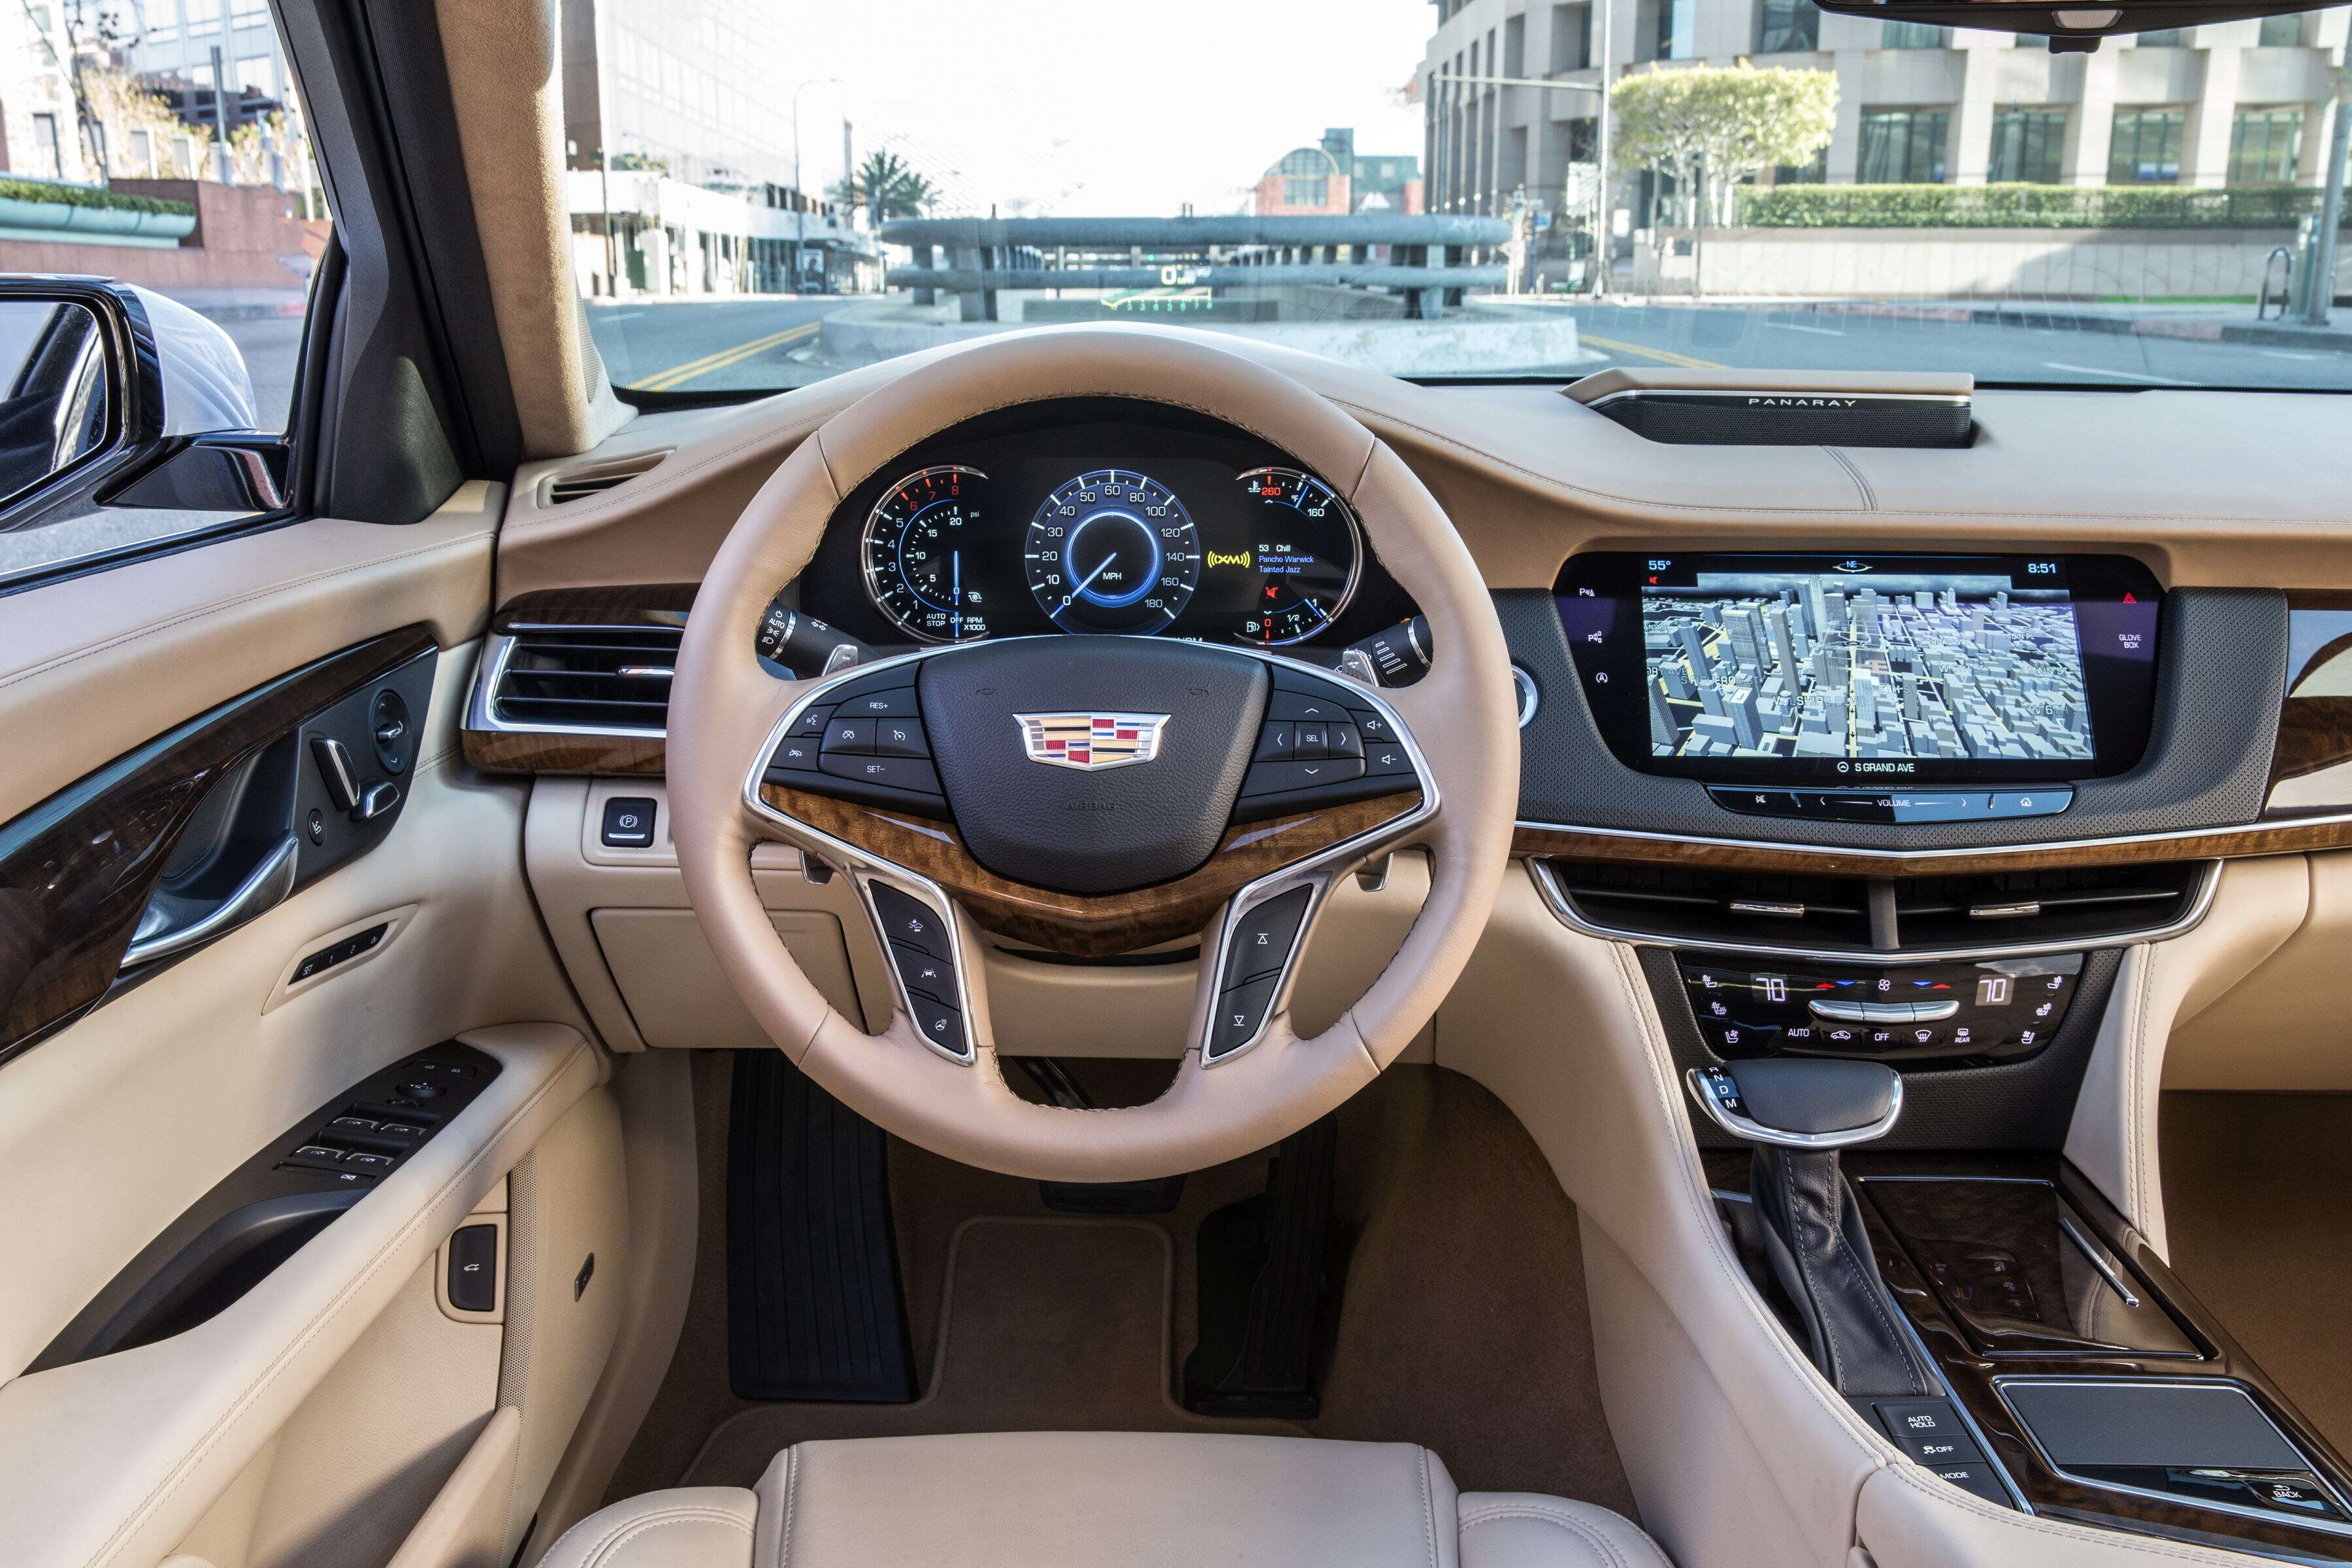 2018 Cadillac Ct6 New Dad Review A Big Sedan With Supercruise Helps